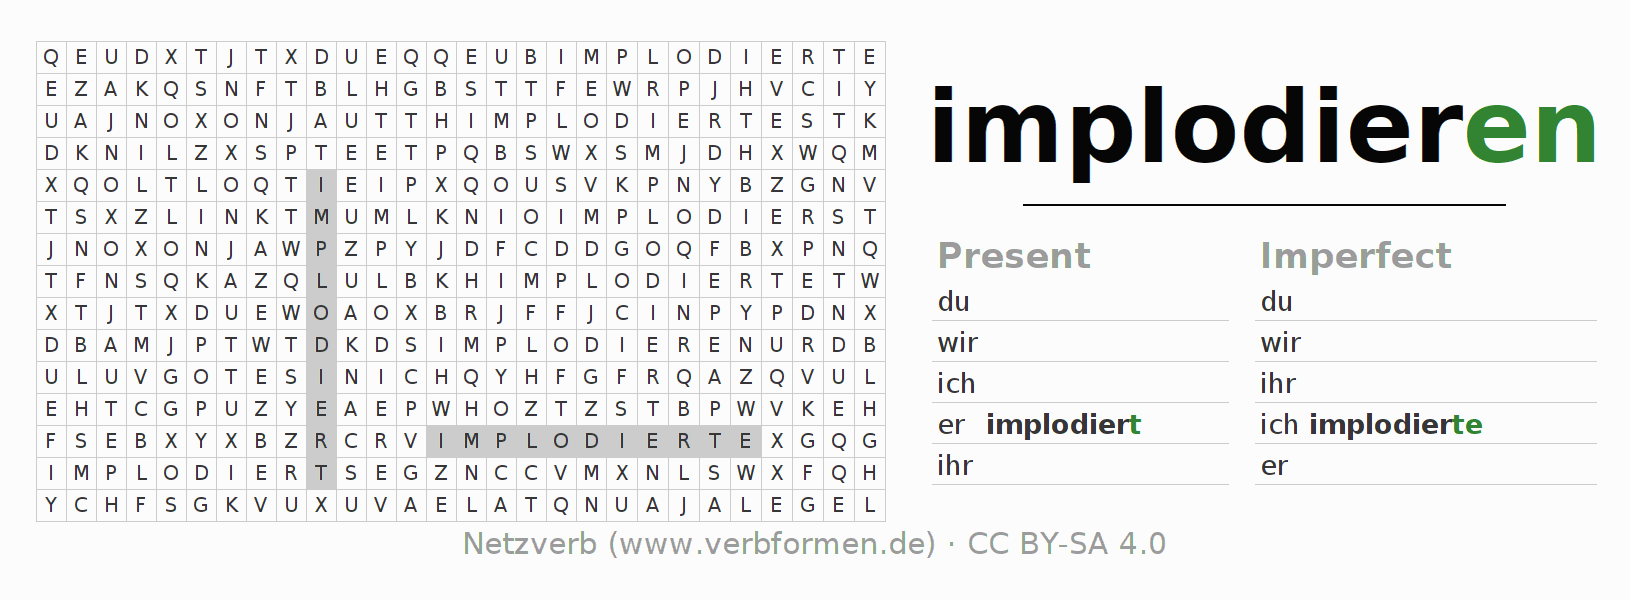 Word search puzzle for the conjugation of the verb implodieren